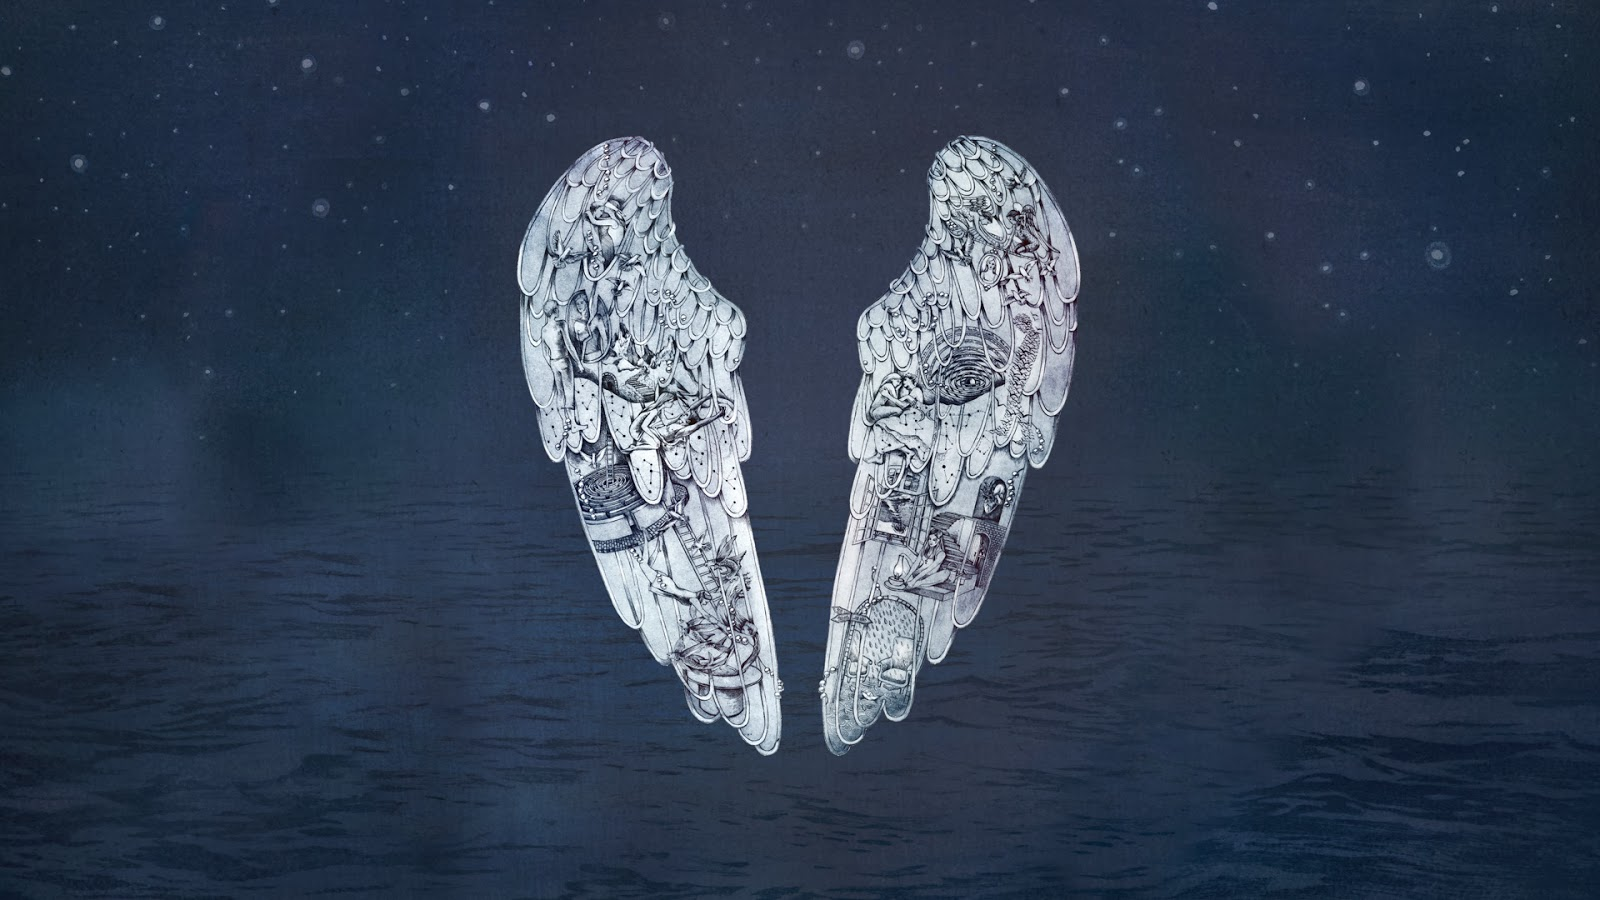 Coldplay Phone Wallpaper Wallpapersafari